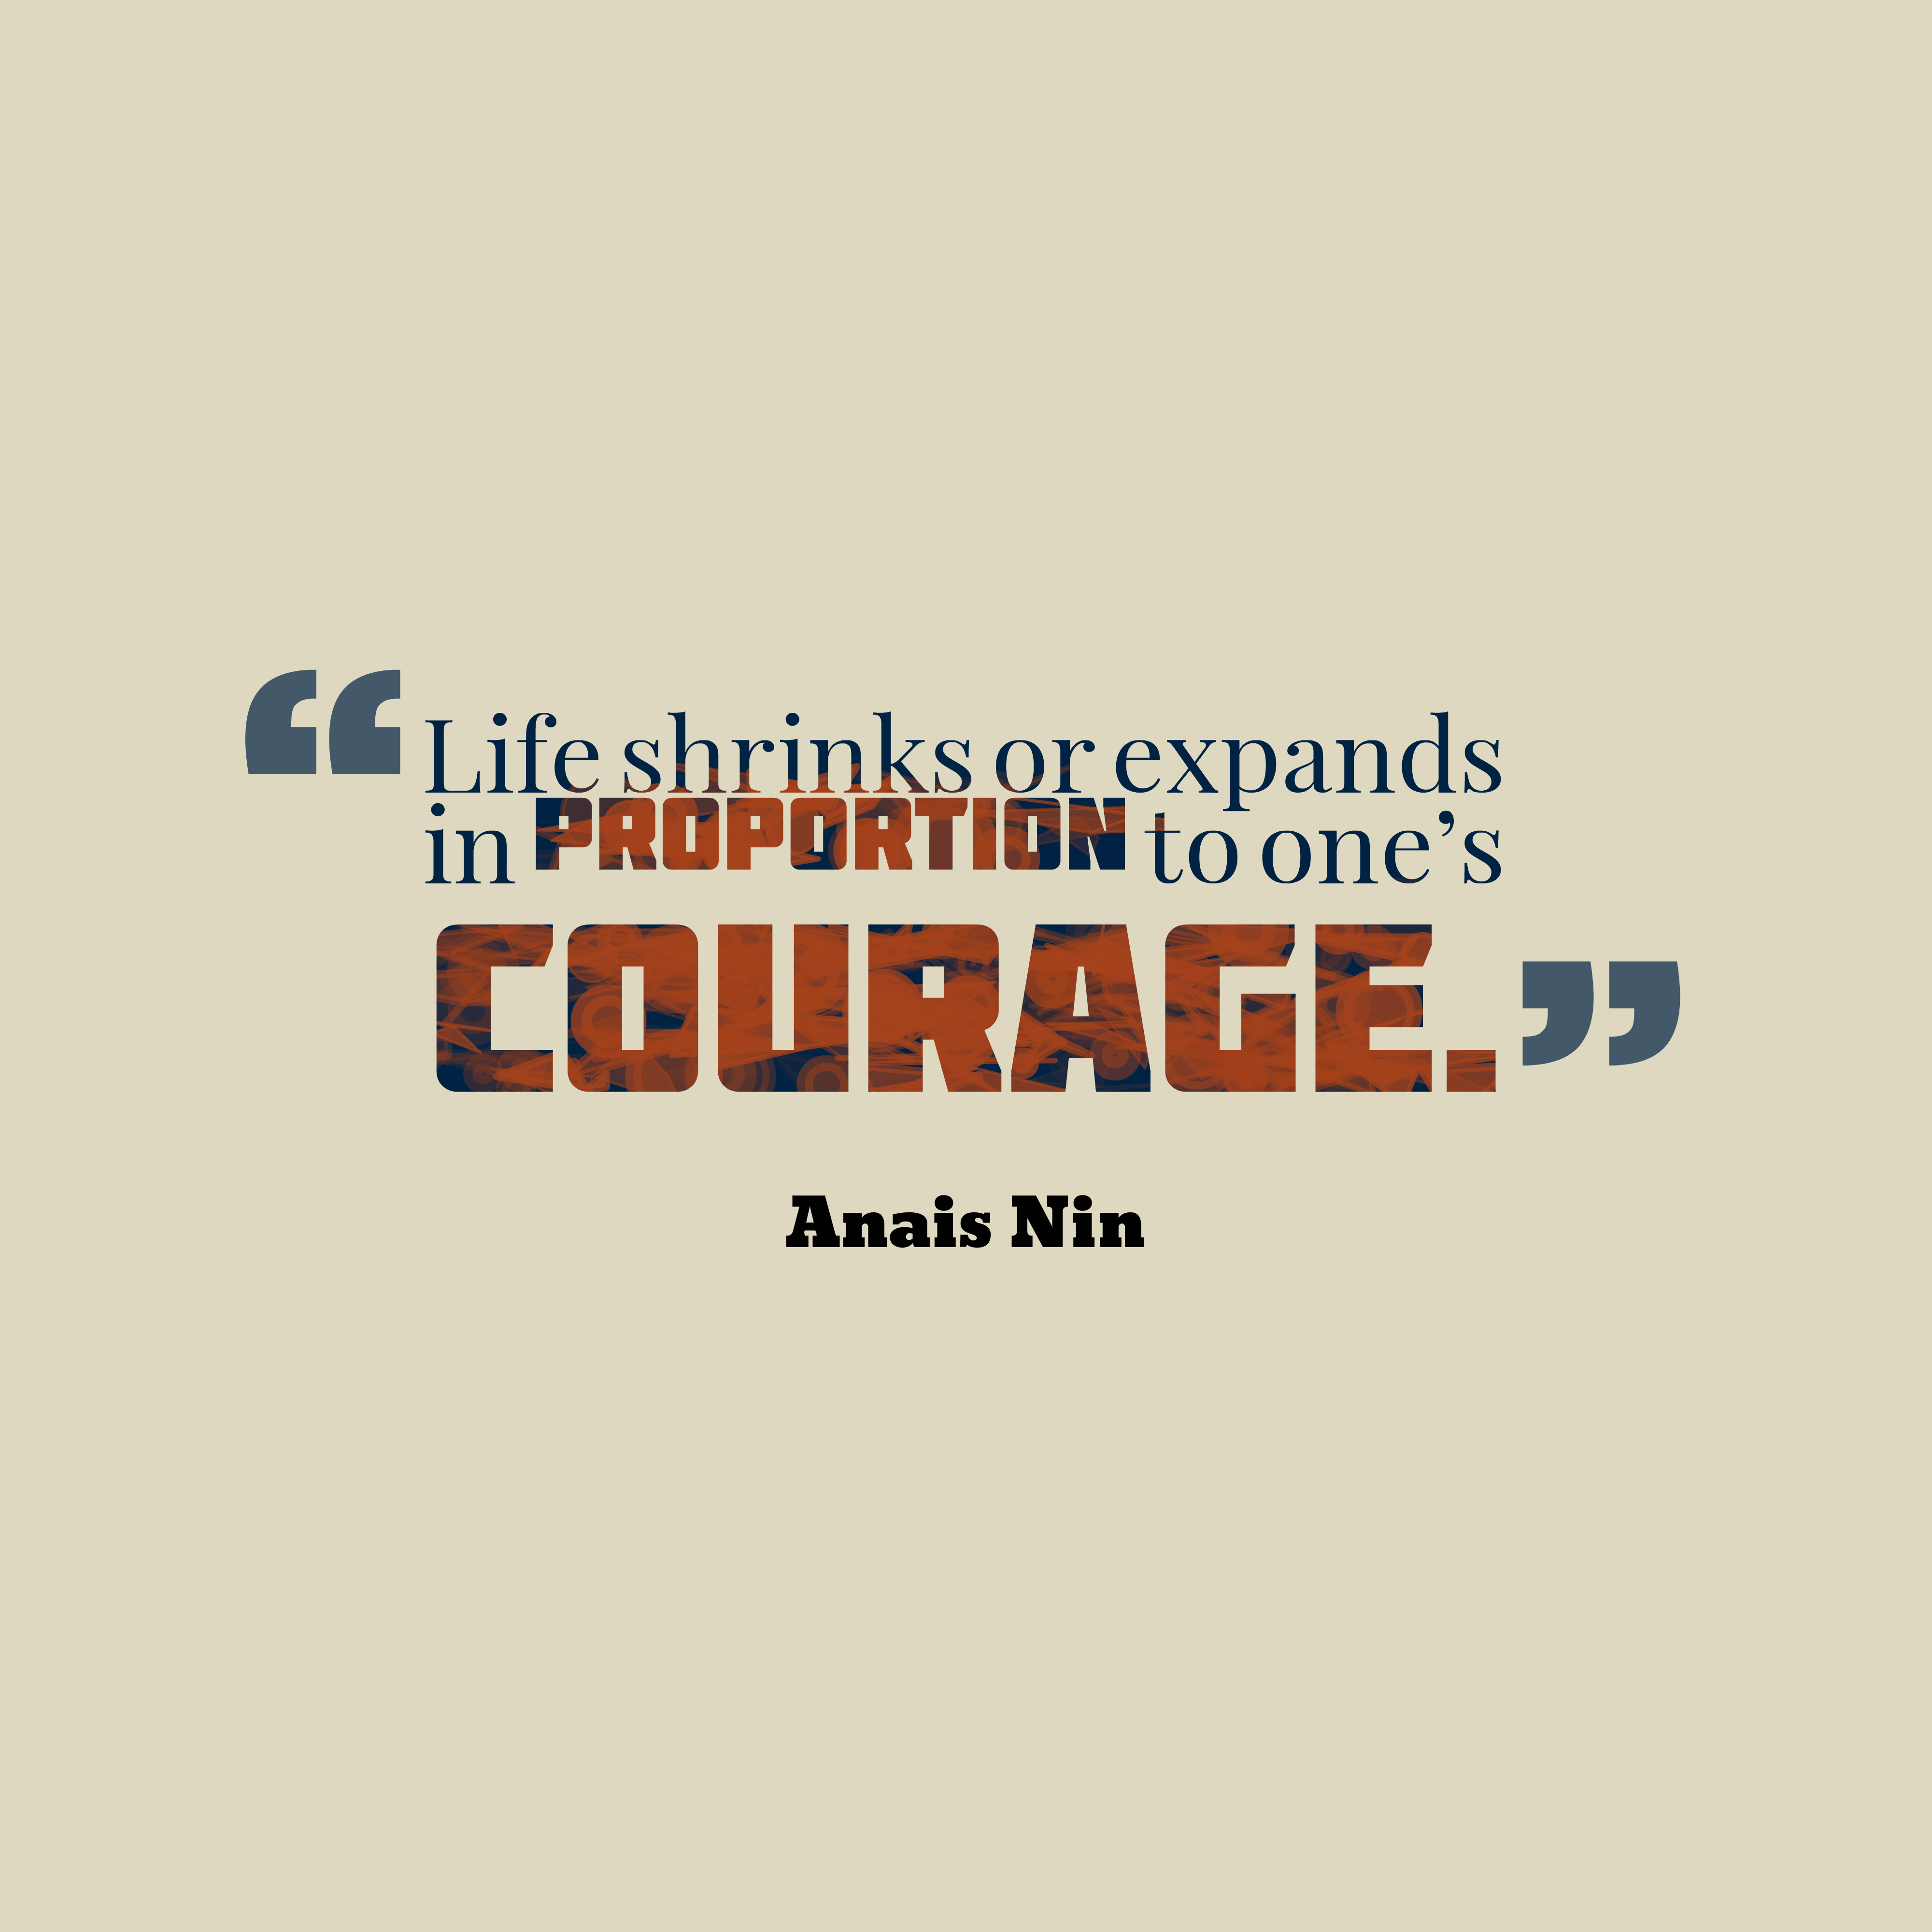 Quotes image of Life shrinks or expands in proportion to one's courage.